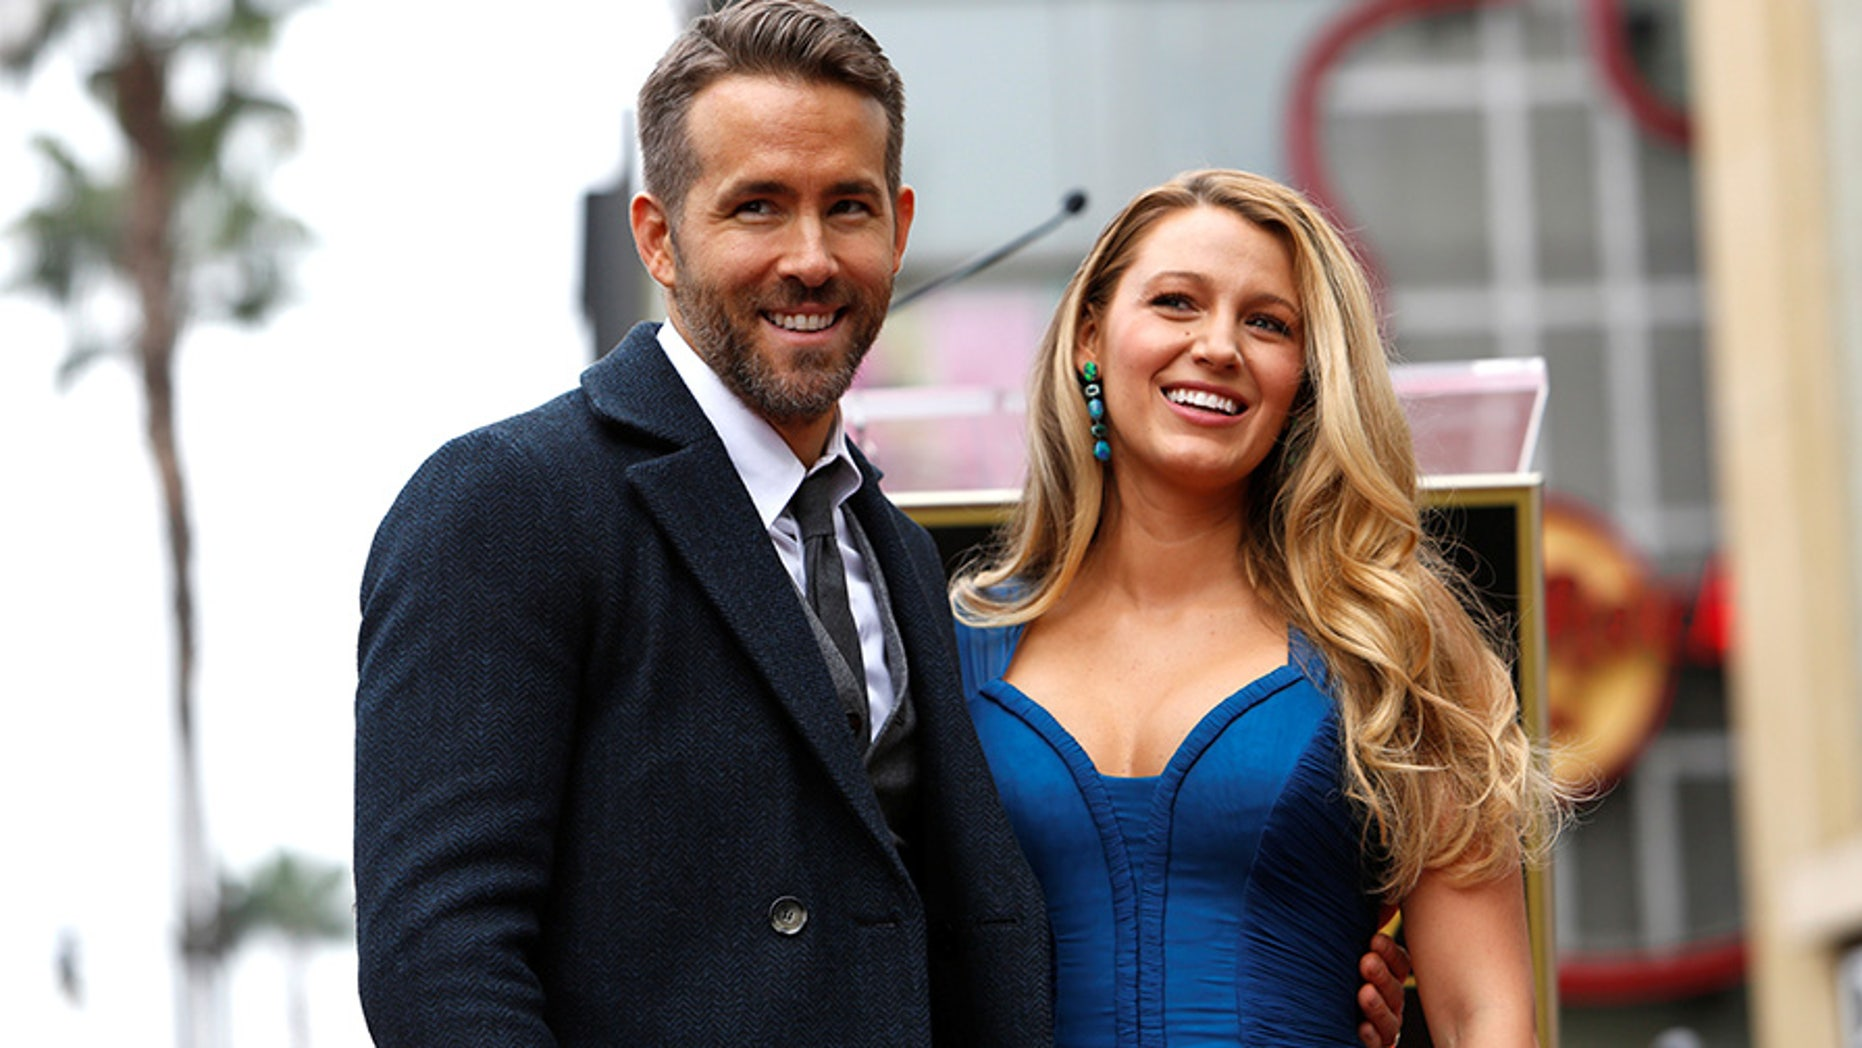 Blake Lively and Ryan Reynolds' reaction to daughter's voice